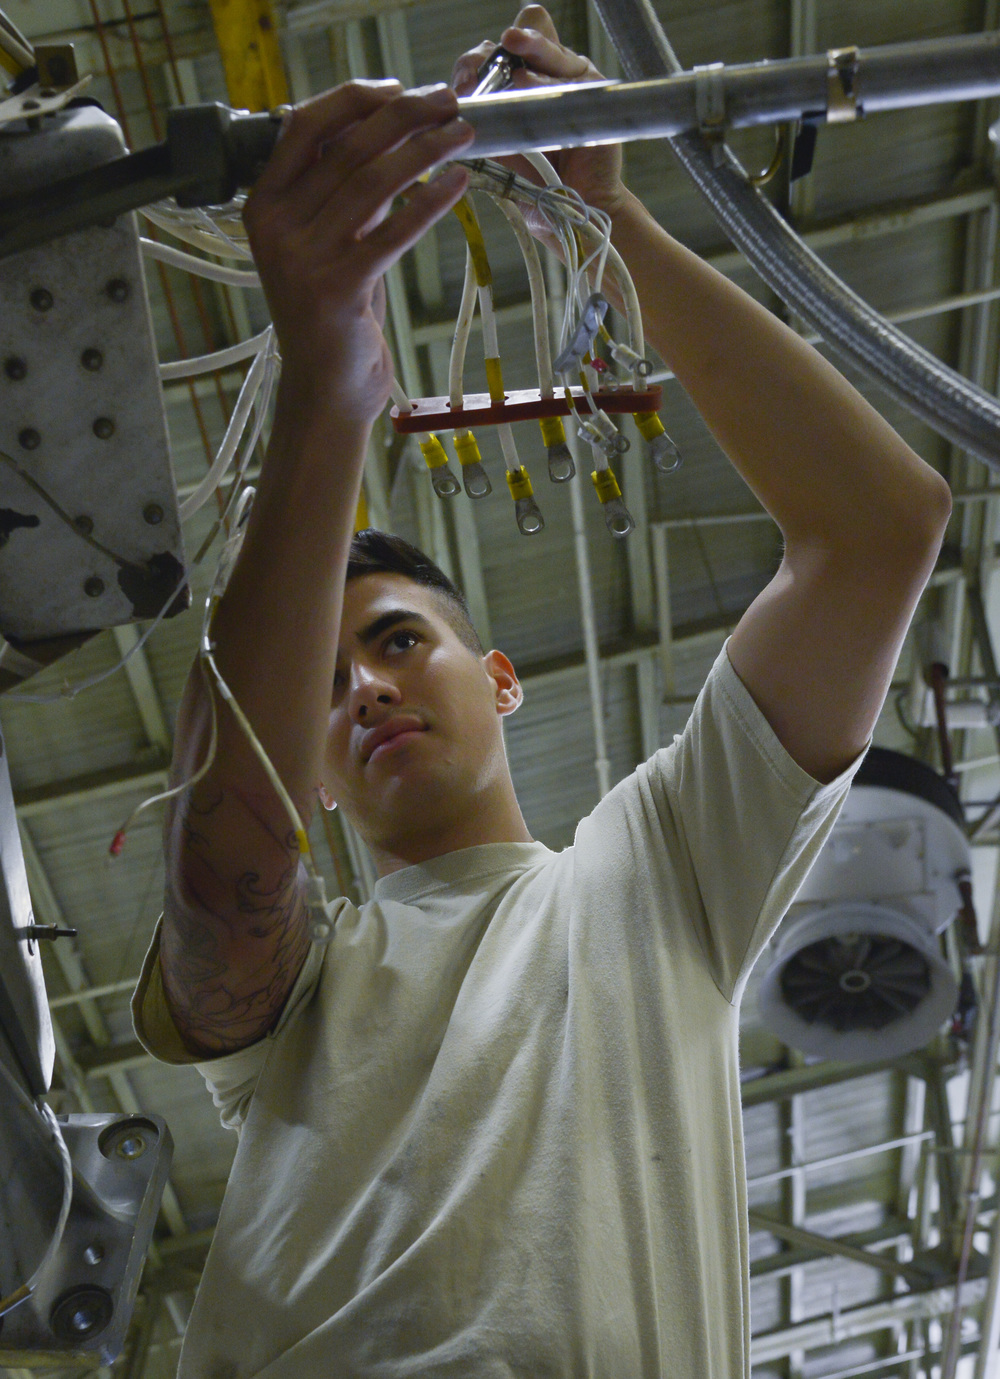 Airman 1st Class Gage Walker, 374th Maintenance Squadron propulsion flight aerospace propulsion apprentice, routes a generator harness on a quick engine change kit at Yokota Air Base, Japan, Sept. 23, 2015. The flight provides engines and propellers for the C-130 Hercules to make sure the aircraft can fly to perform airlift and humanitarian missions throughout the Indo-Asia Pacific Region. (U.S. Air Force photo by Senior Airman David Owsianka/Released)